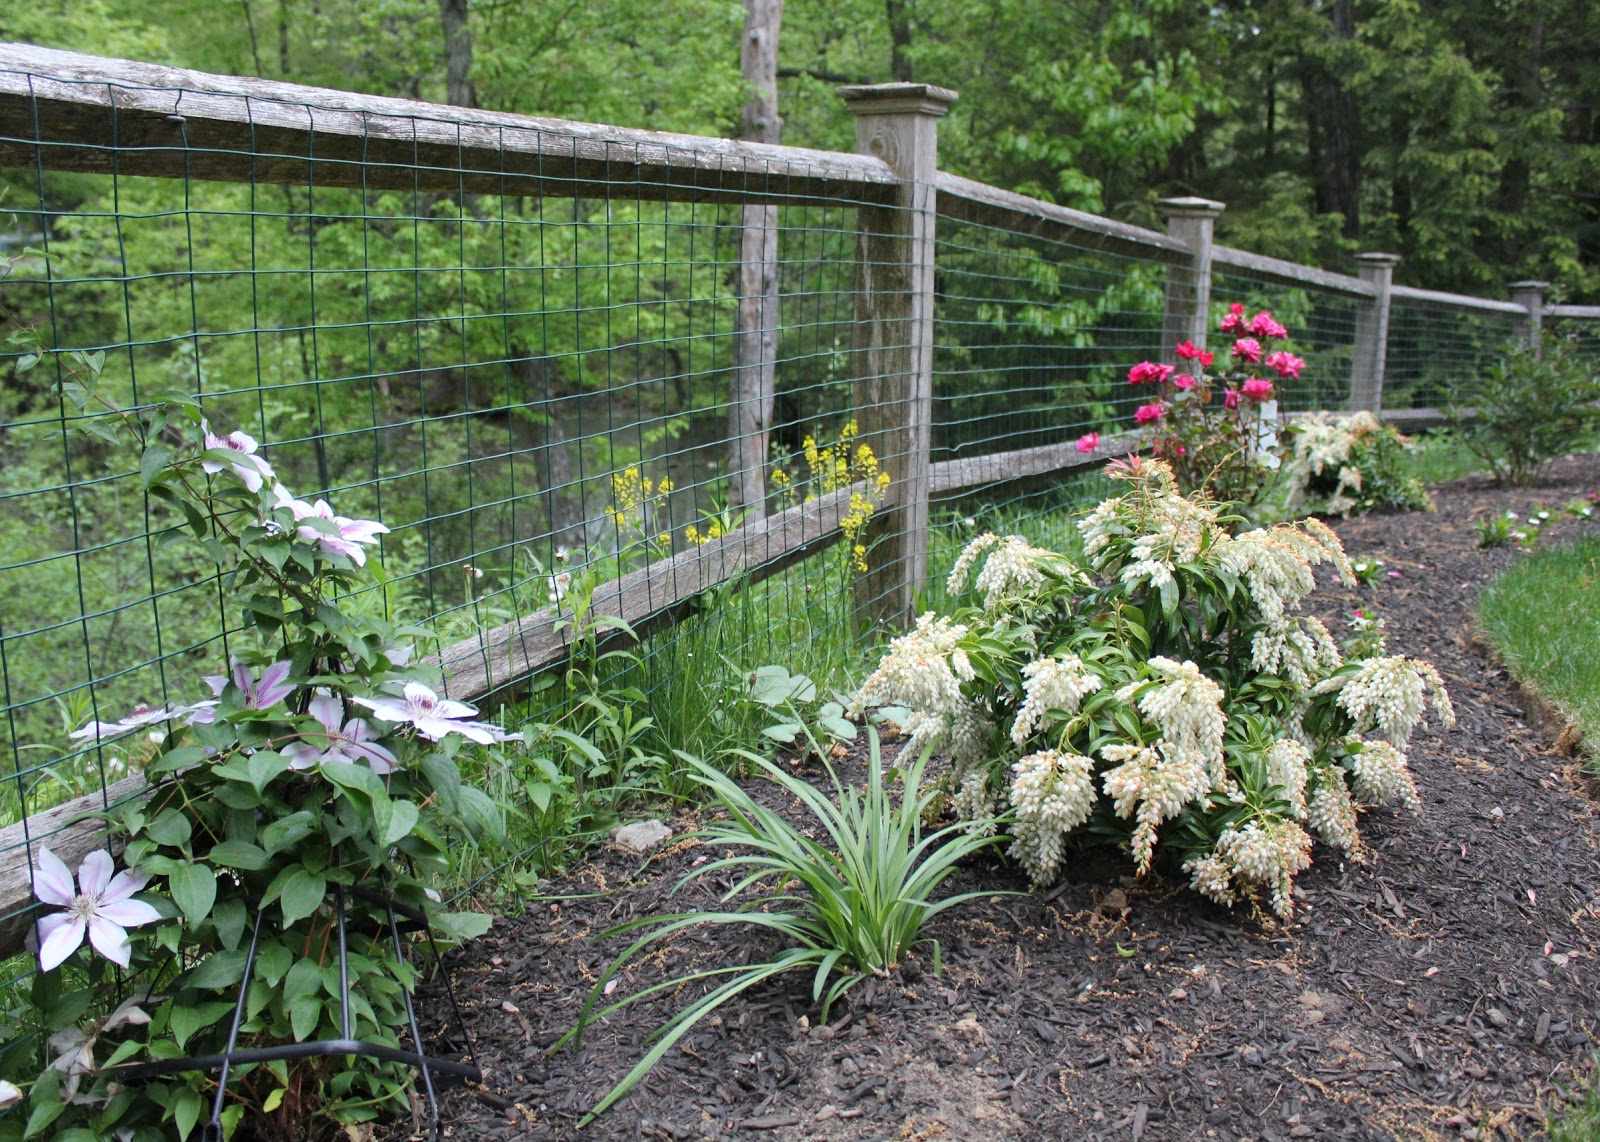 The wildlife garden in the h l blomquist garden of native plants - Beyond This Fenced In Part Of Their Backyard Is A Small Pond Connected To A Wetlands Area While Out Gardening We Get To Enjoy Seeing Some Of The Wildlife